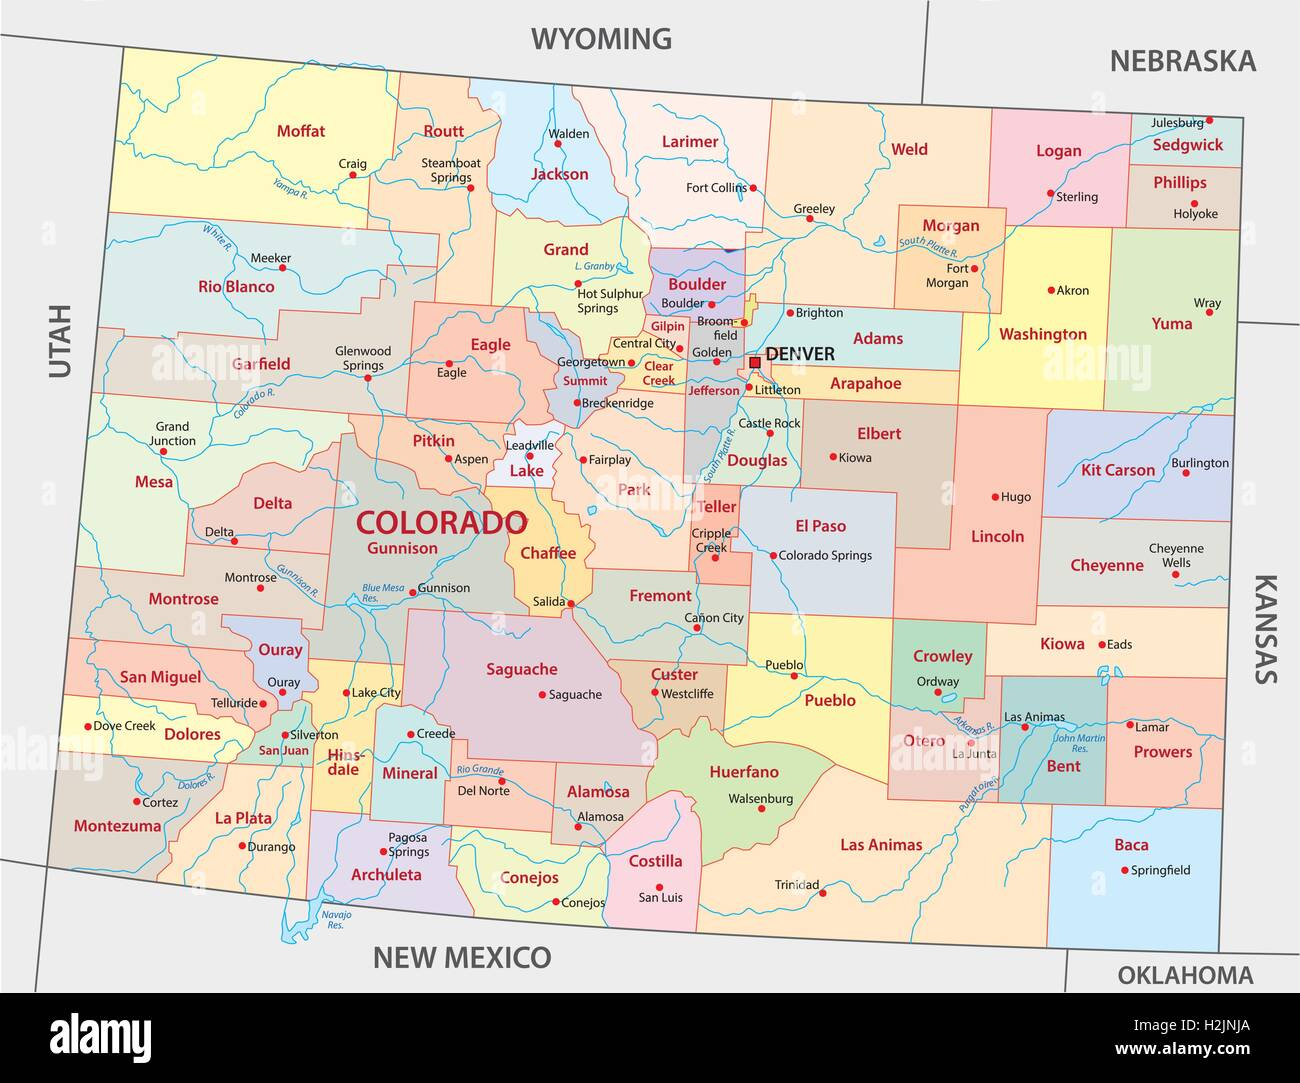 Akron Colorado Map.Colorado Administrative Map Stock Vector Art Illustration Vector